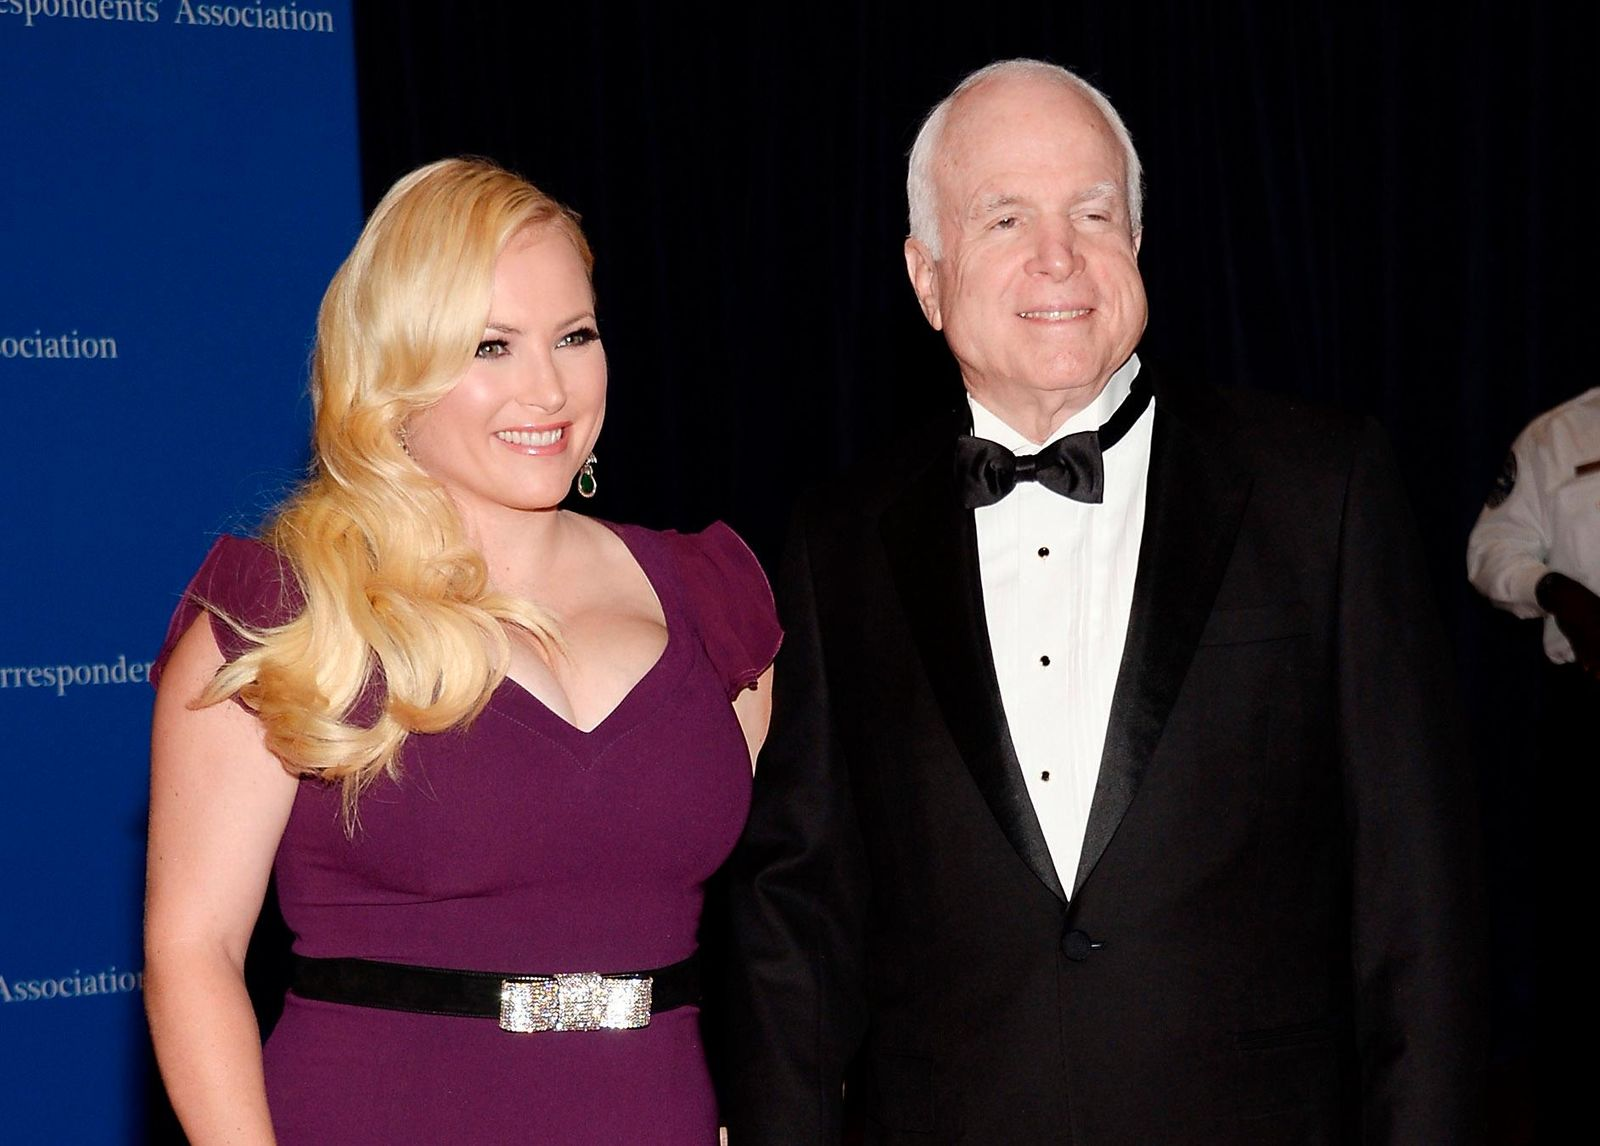 FILE - In this May 3, 2014 file photo, Meghan McCain, and Sen. John McCain attend the White House Correspondents' Association Dinner in Washington. (Photo by Evan Agostini/Invision/AP, File)